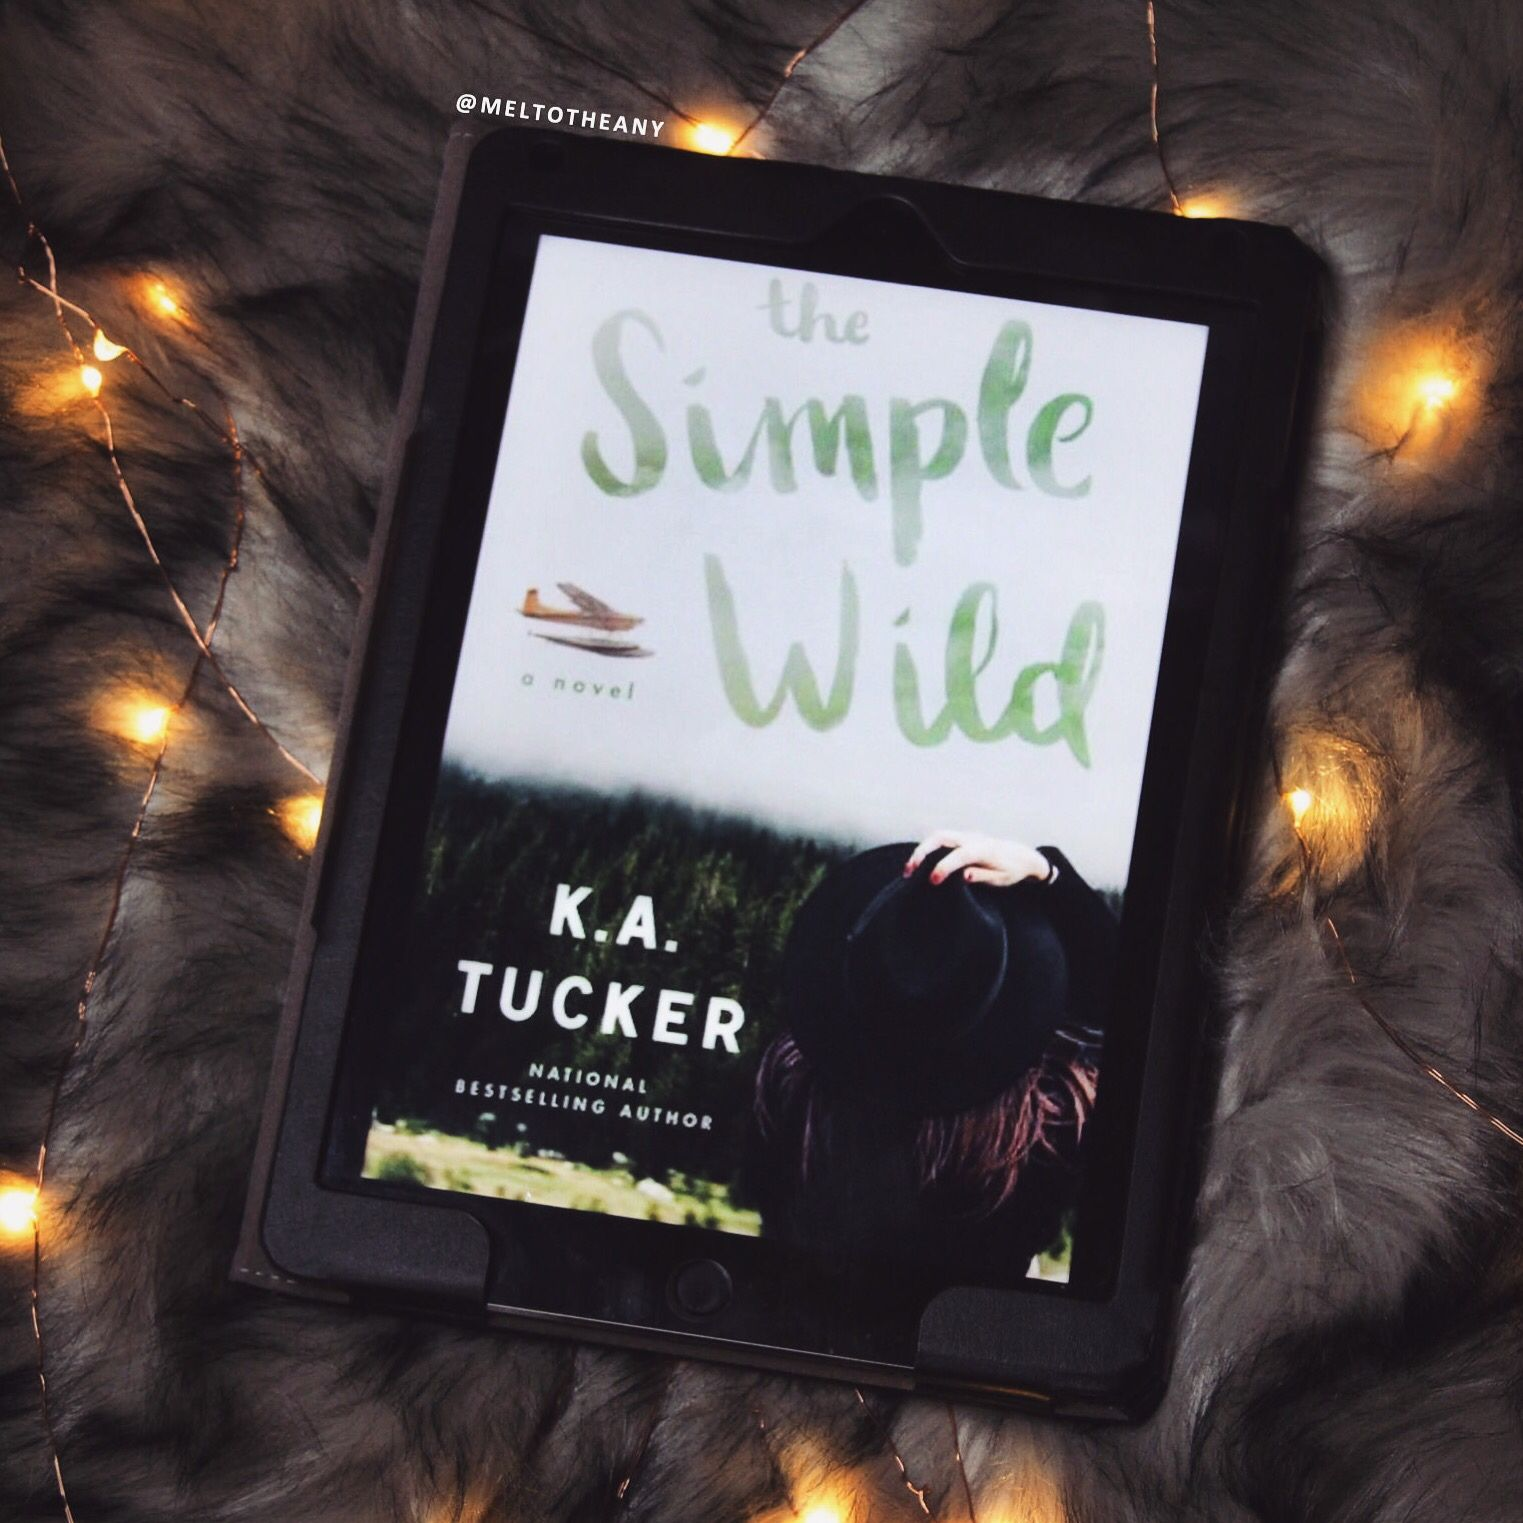 The Simple Wild by K.A. Tucker (meltotheany) Simple